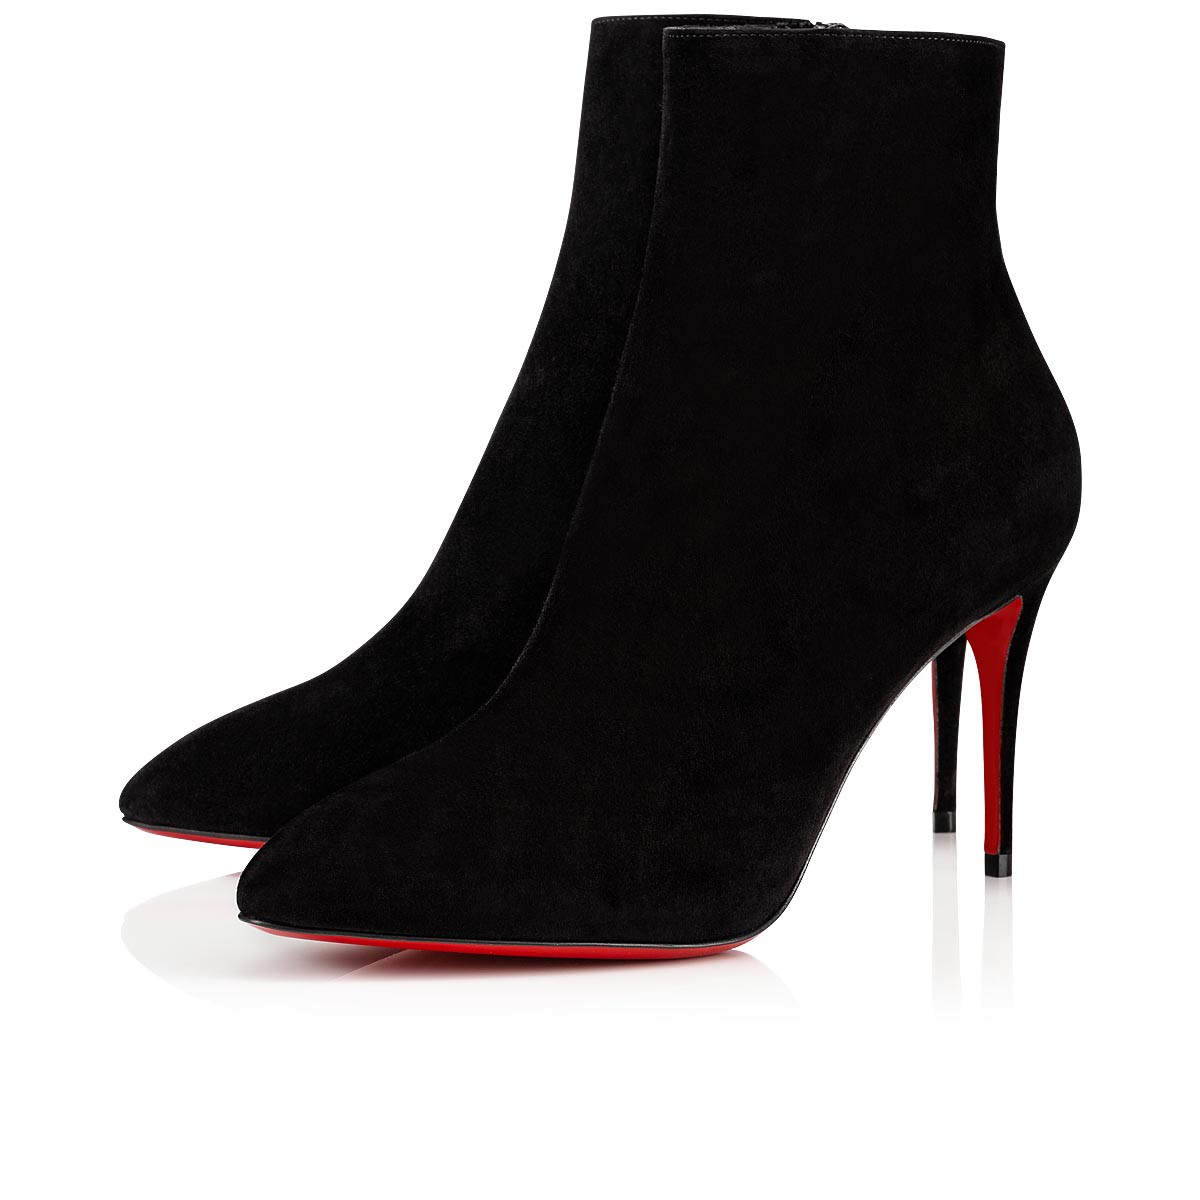 829562c33d14e Eloise Booty 85 Black Suede - Women Shoes - Christian Louboutin